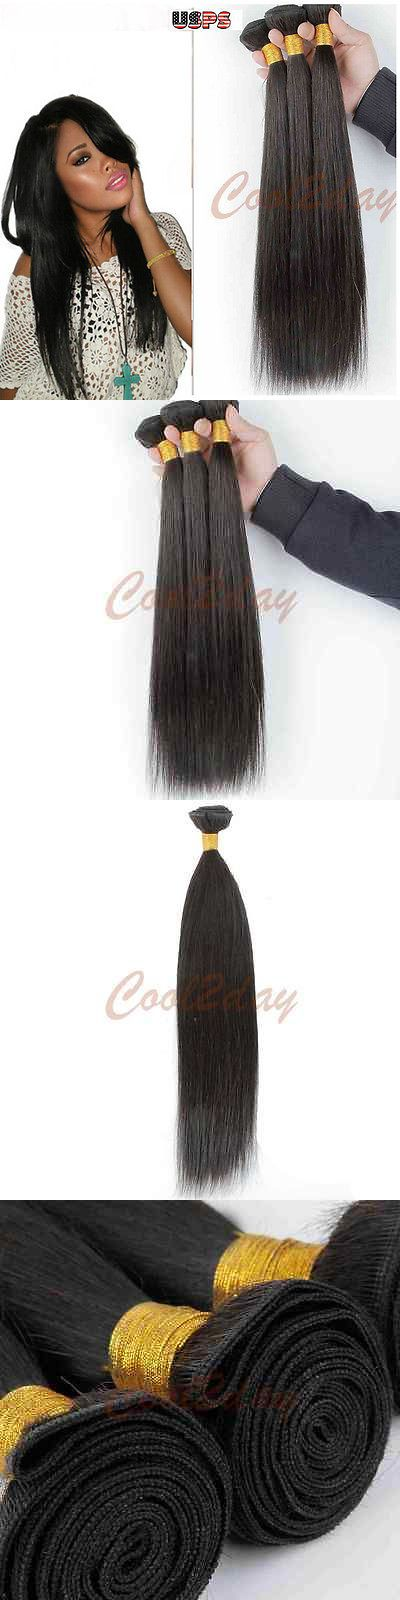 Hair Extensions: 100% Unprocessed Virgin Remy Hair Human Hair Weave Extensions Brazilian Straight BUY IT NOW ONLY: $38.99